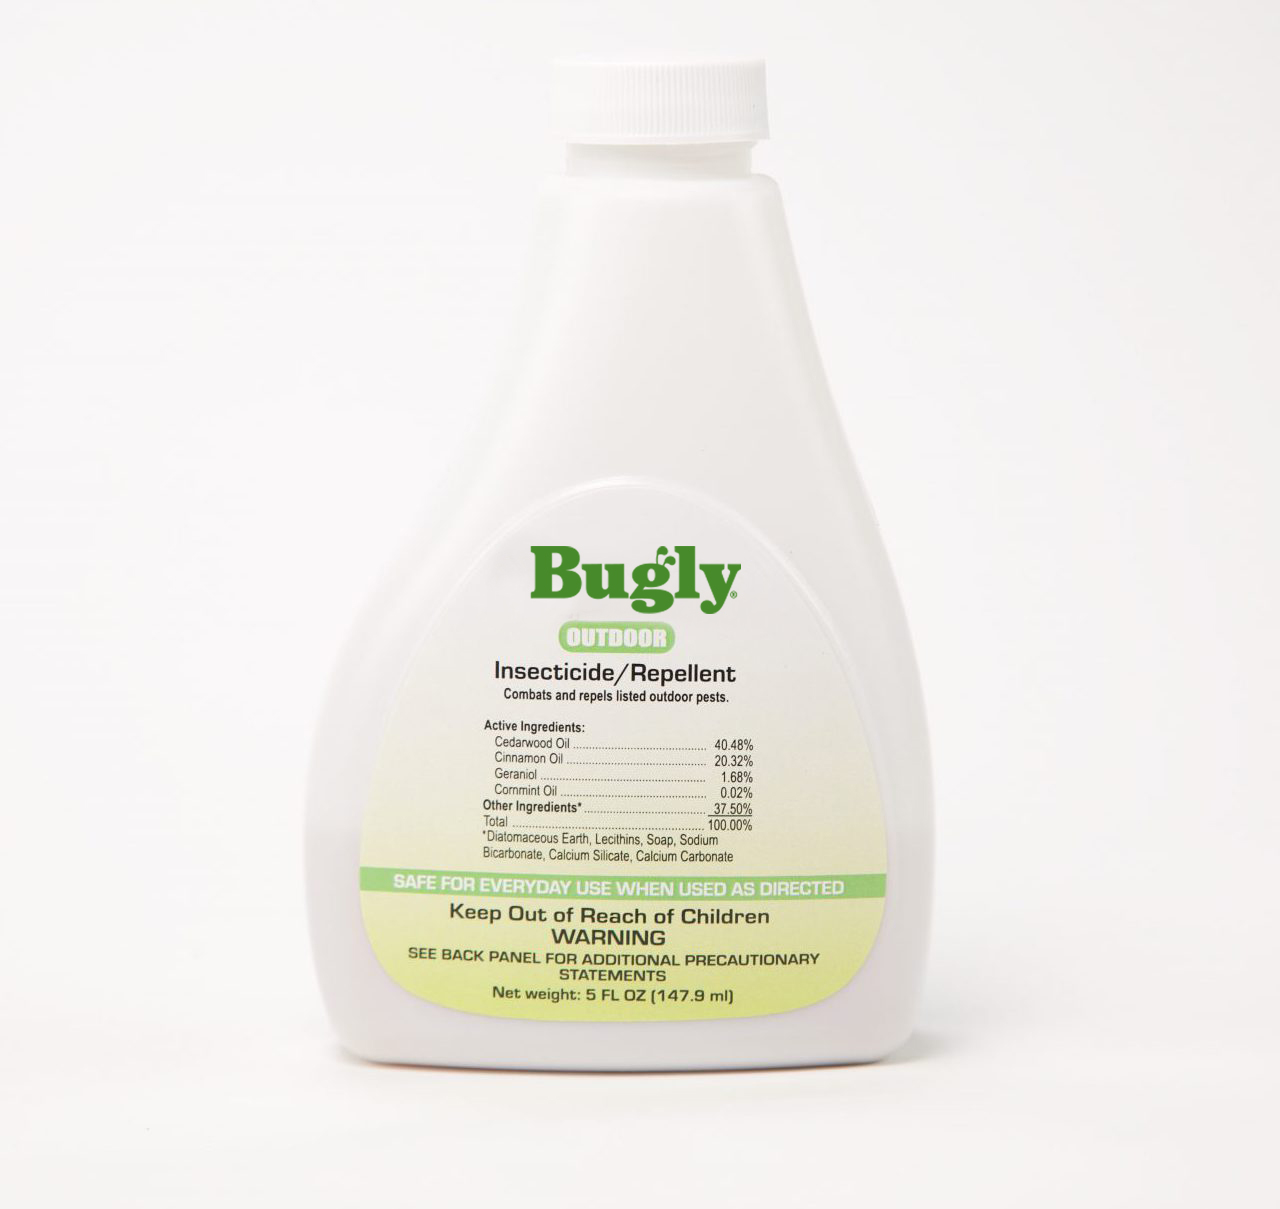 Bugly-outdoor-product-photo.jpg